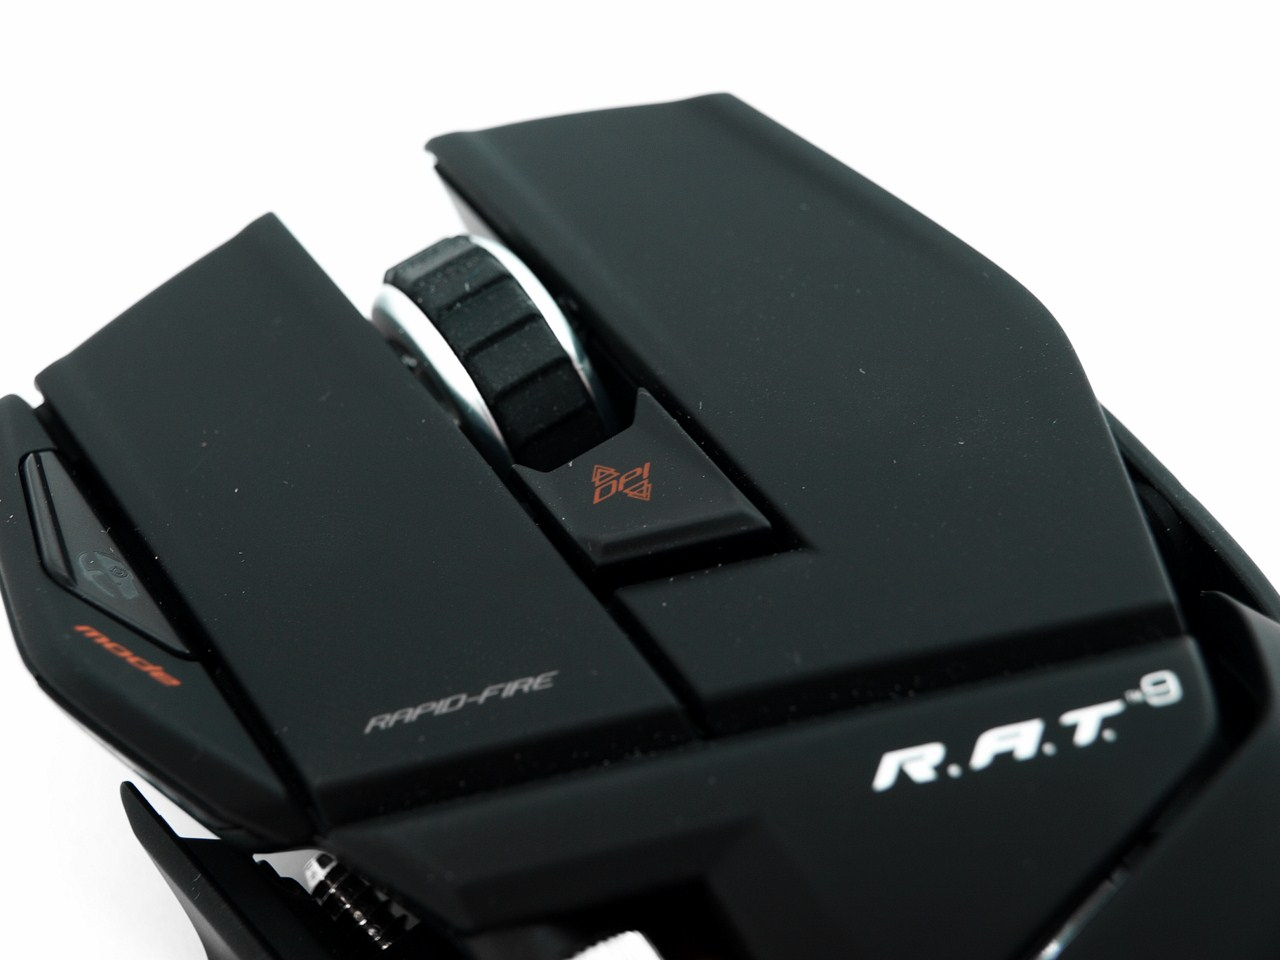 Mad Catz Cyborg R.A.T.9 Wireless Gaming Mouse Review